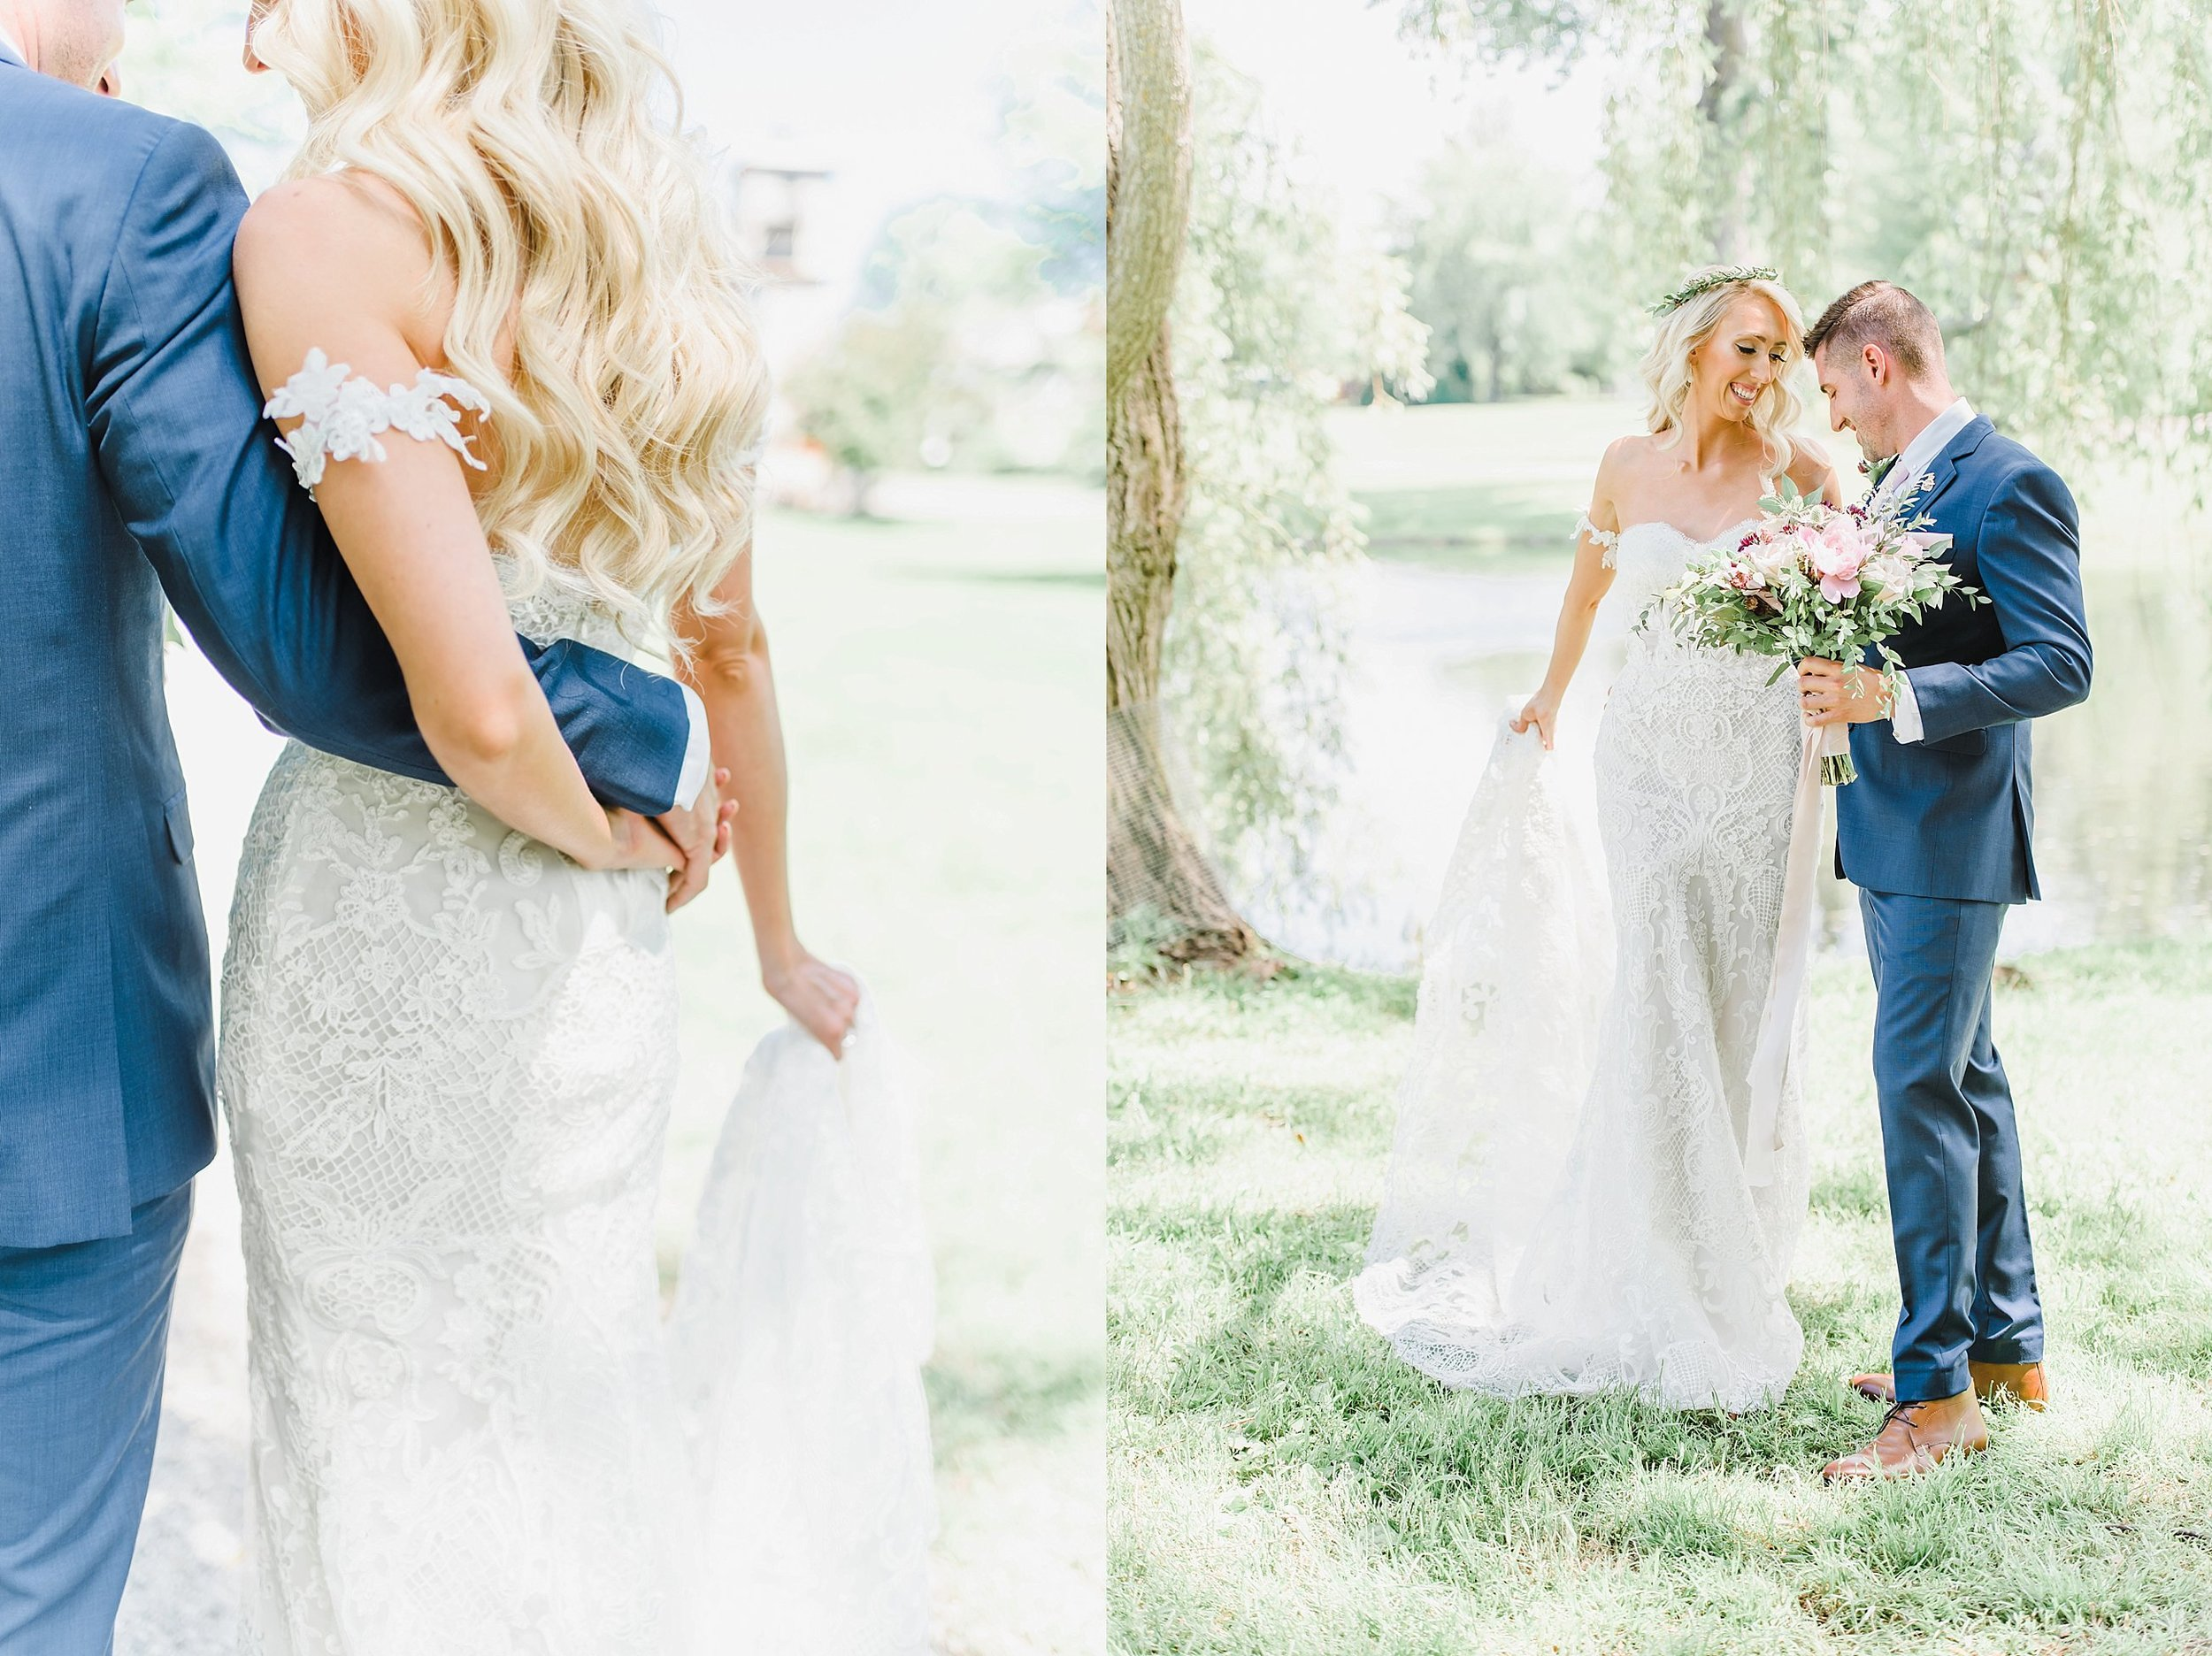 After their first look, we walked around Stewart Park to take their bridal portraits.  We had so much time walking the grounds and enjoying the beautiful day before the ceremony.